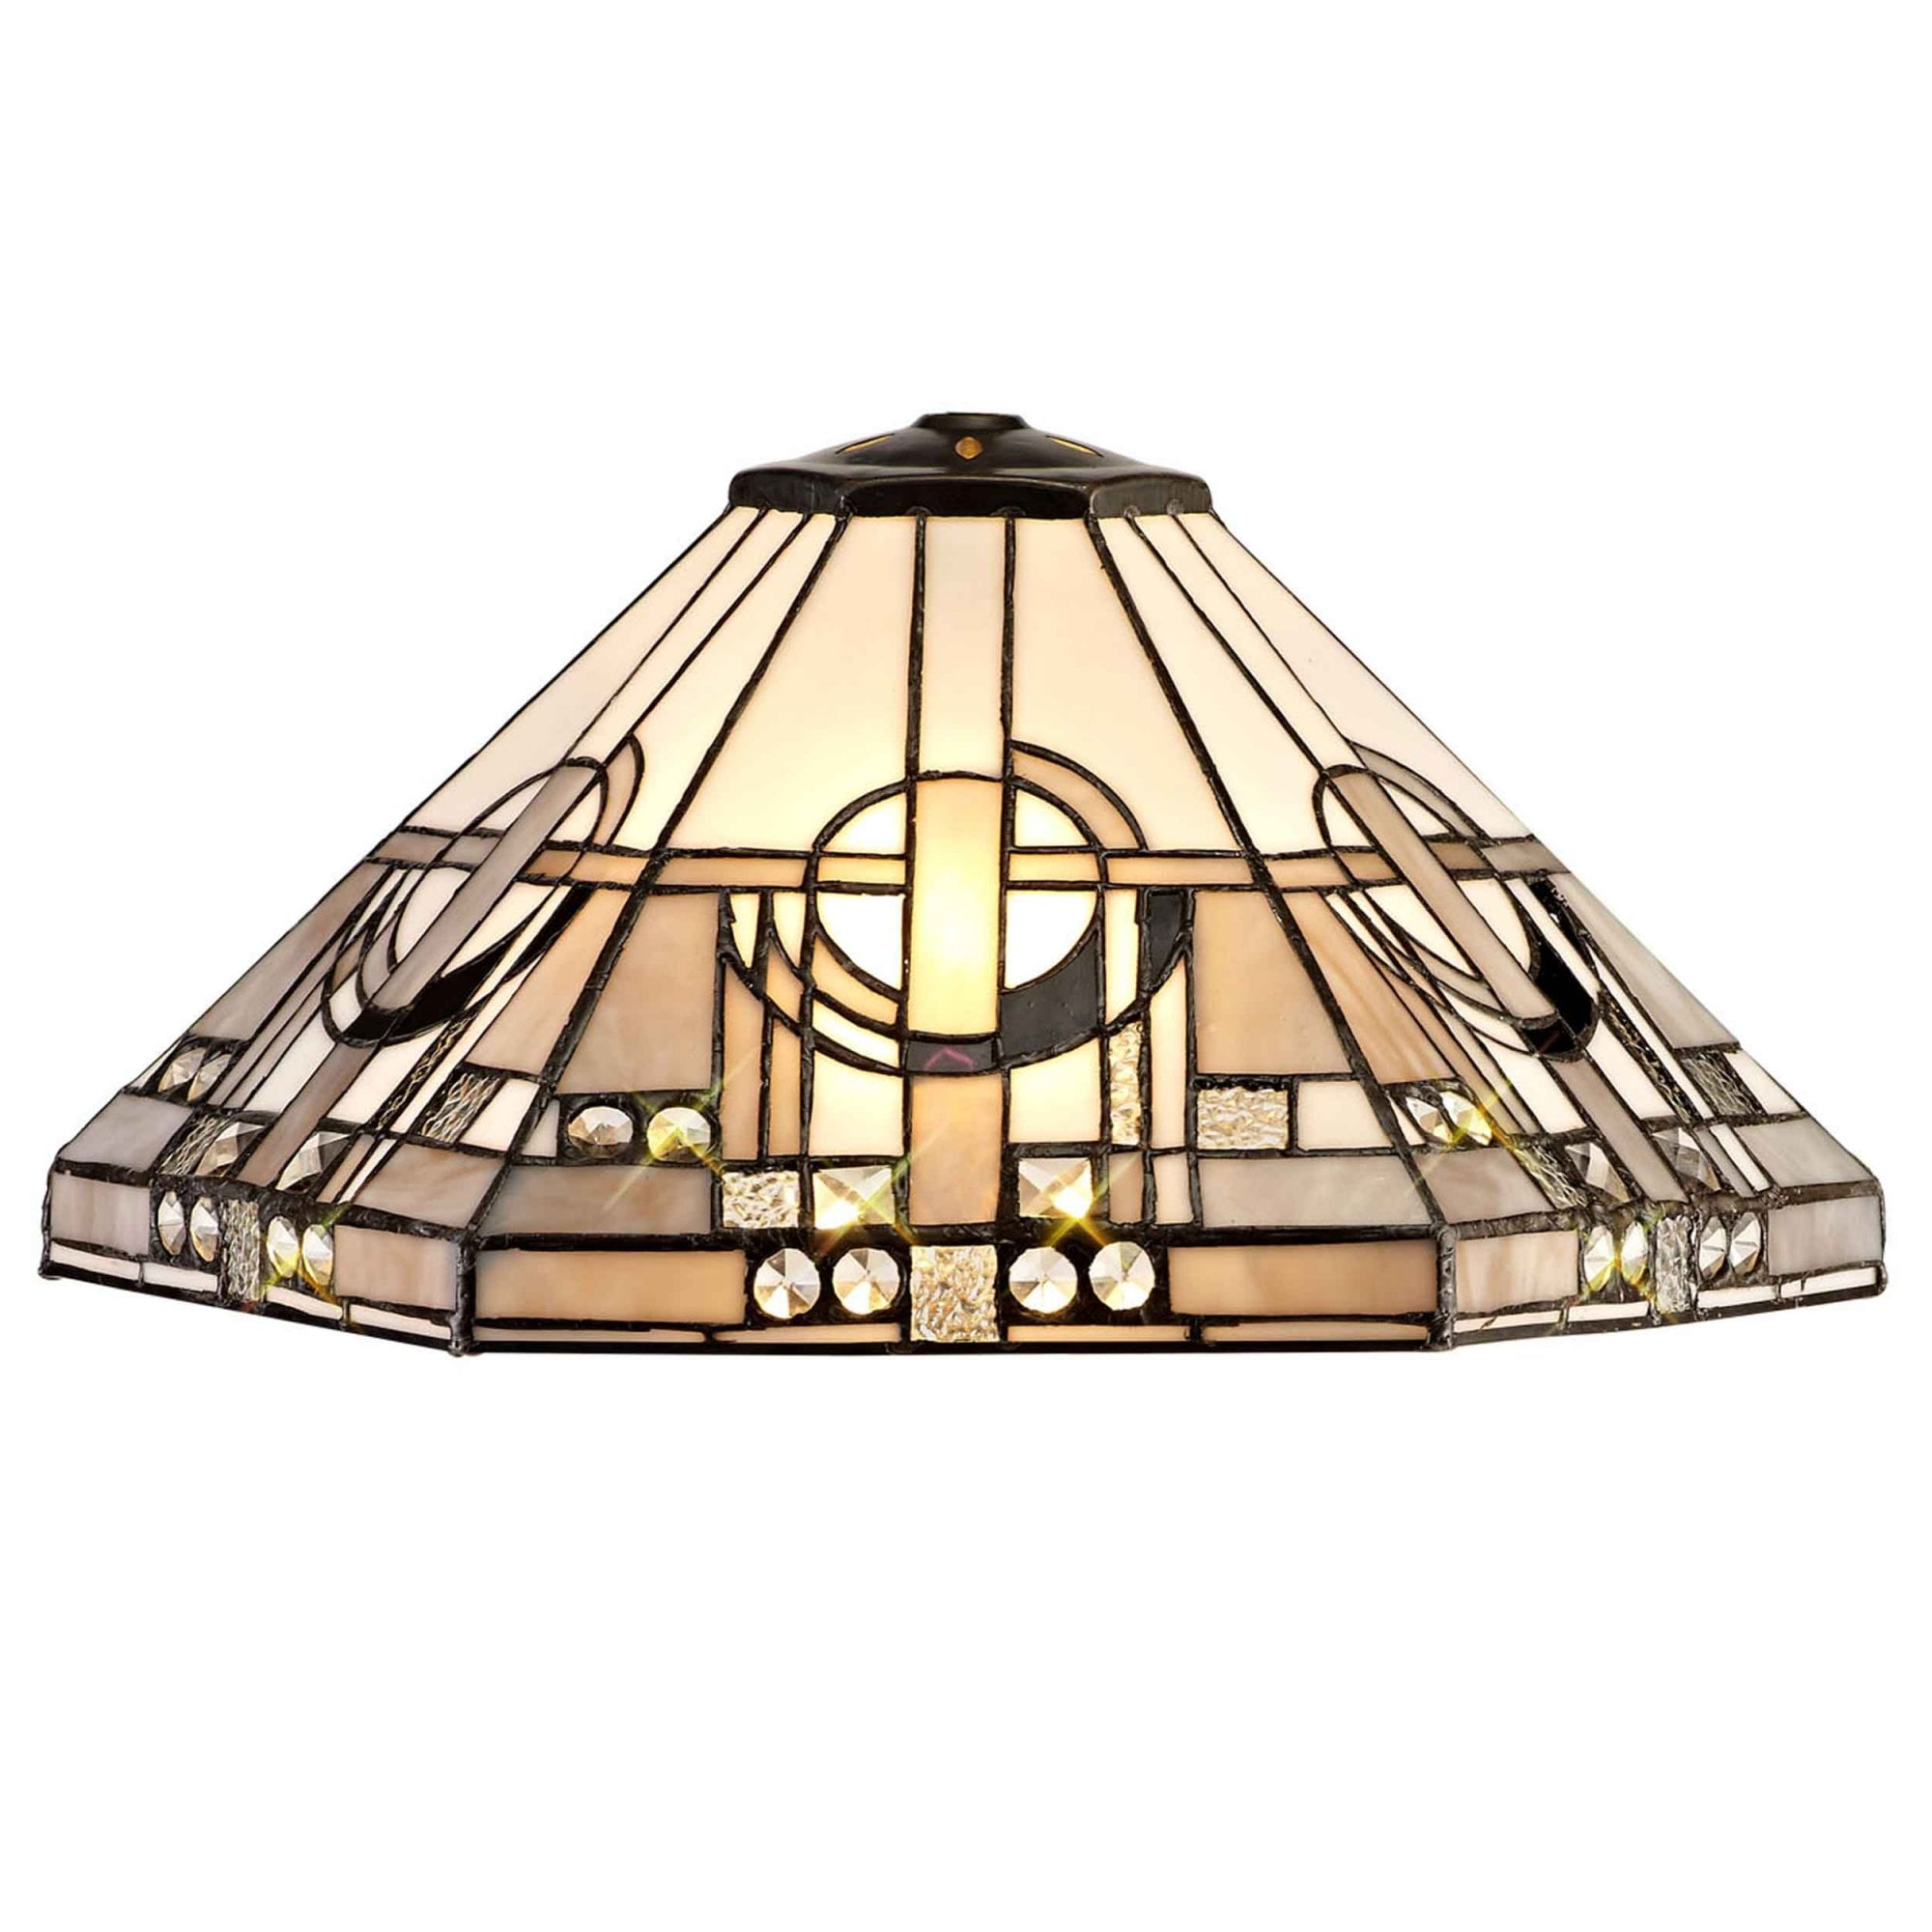 Picture of: Dusk Collection Jacobstowe Medium Tiffany Grey And White Glass Lamp Shade Fitting Style From Dusk Lighting Uk